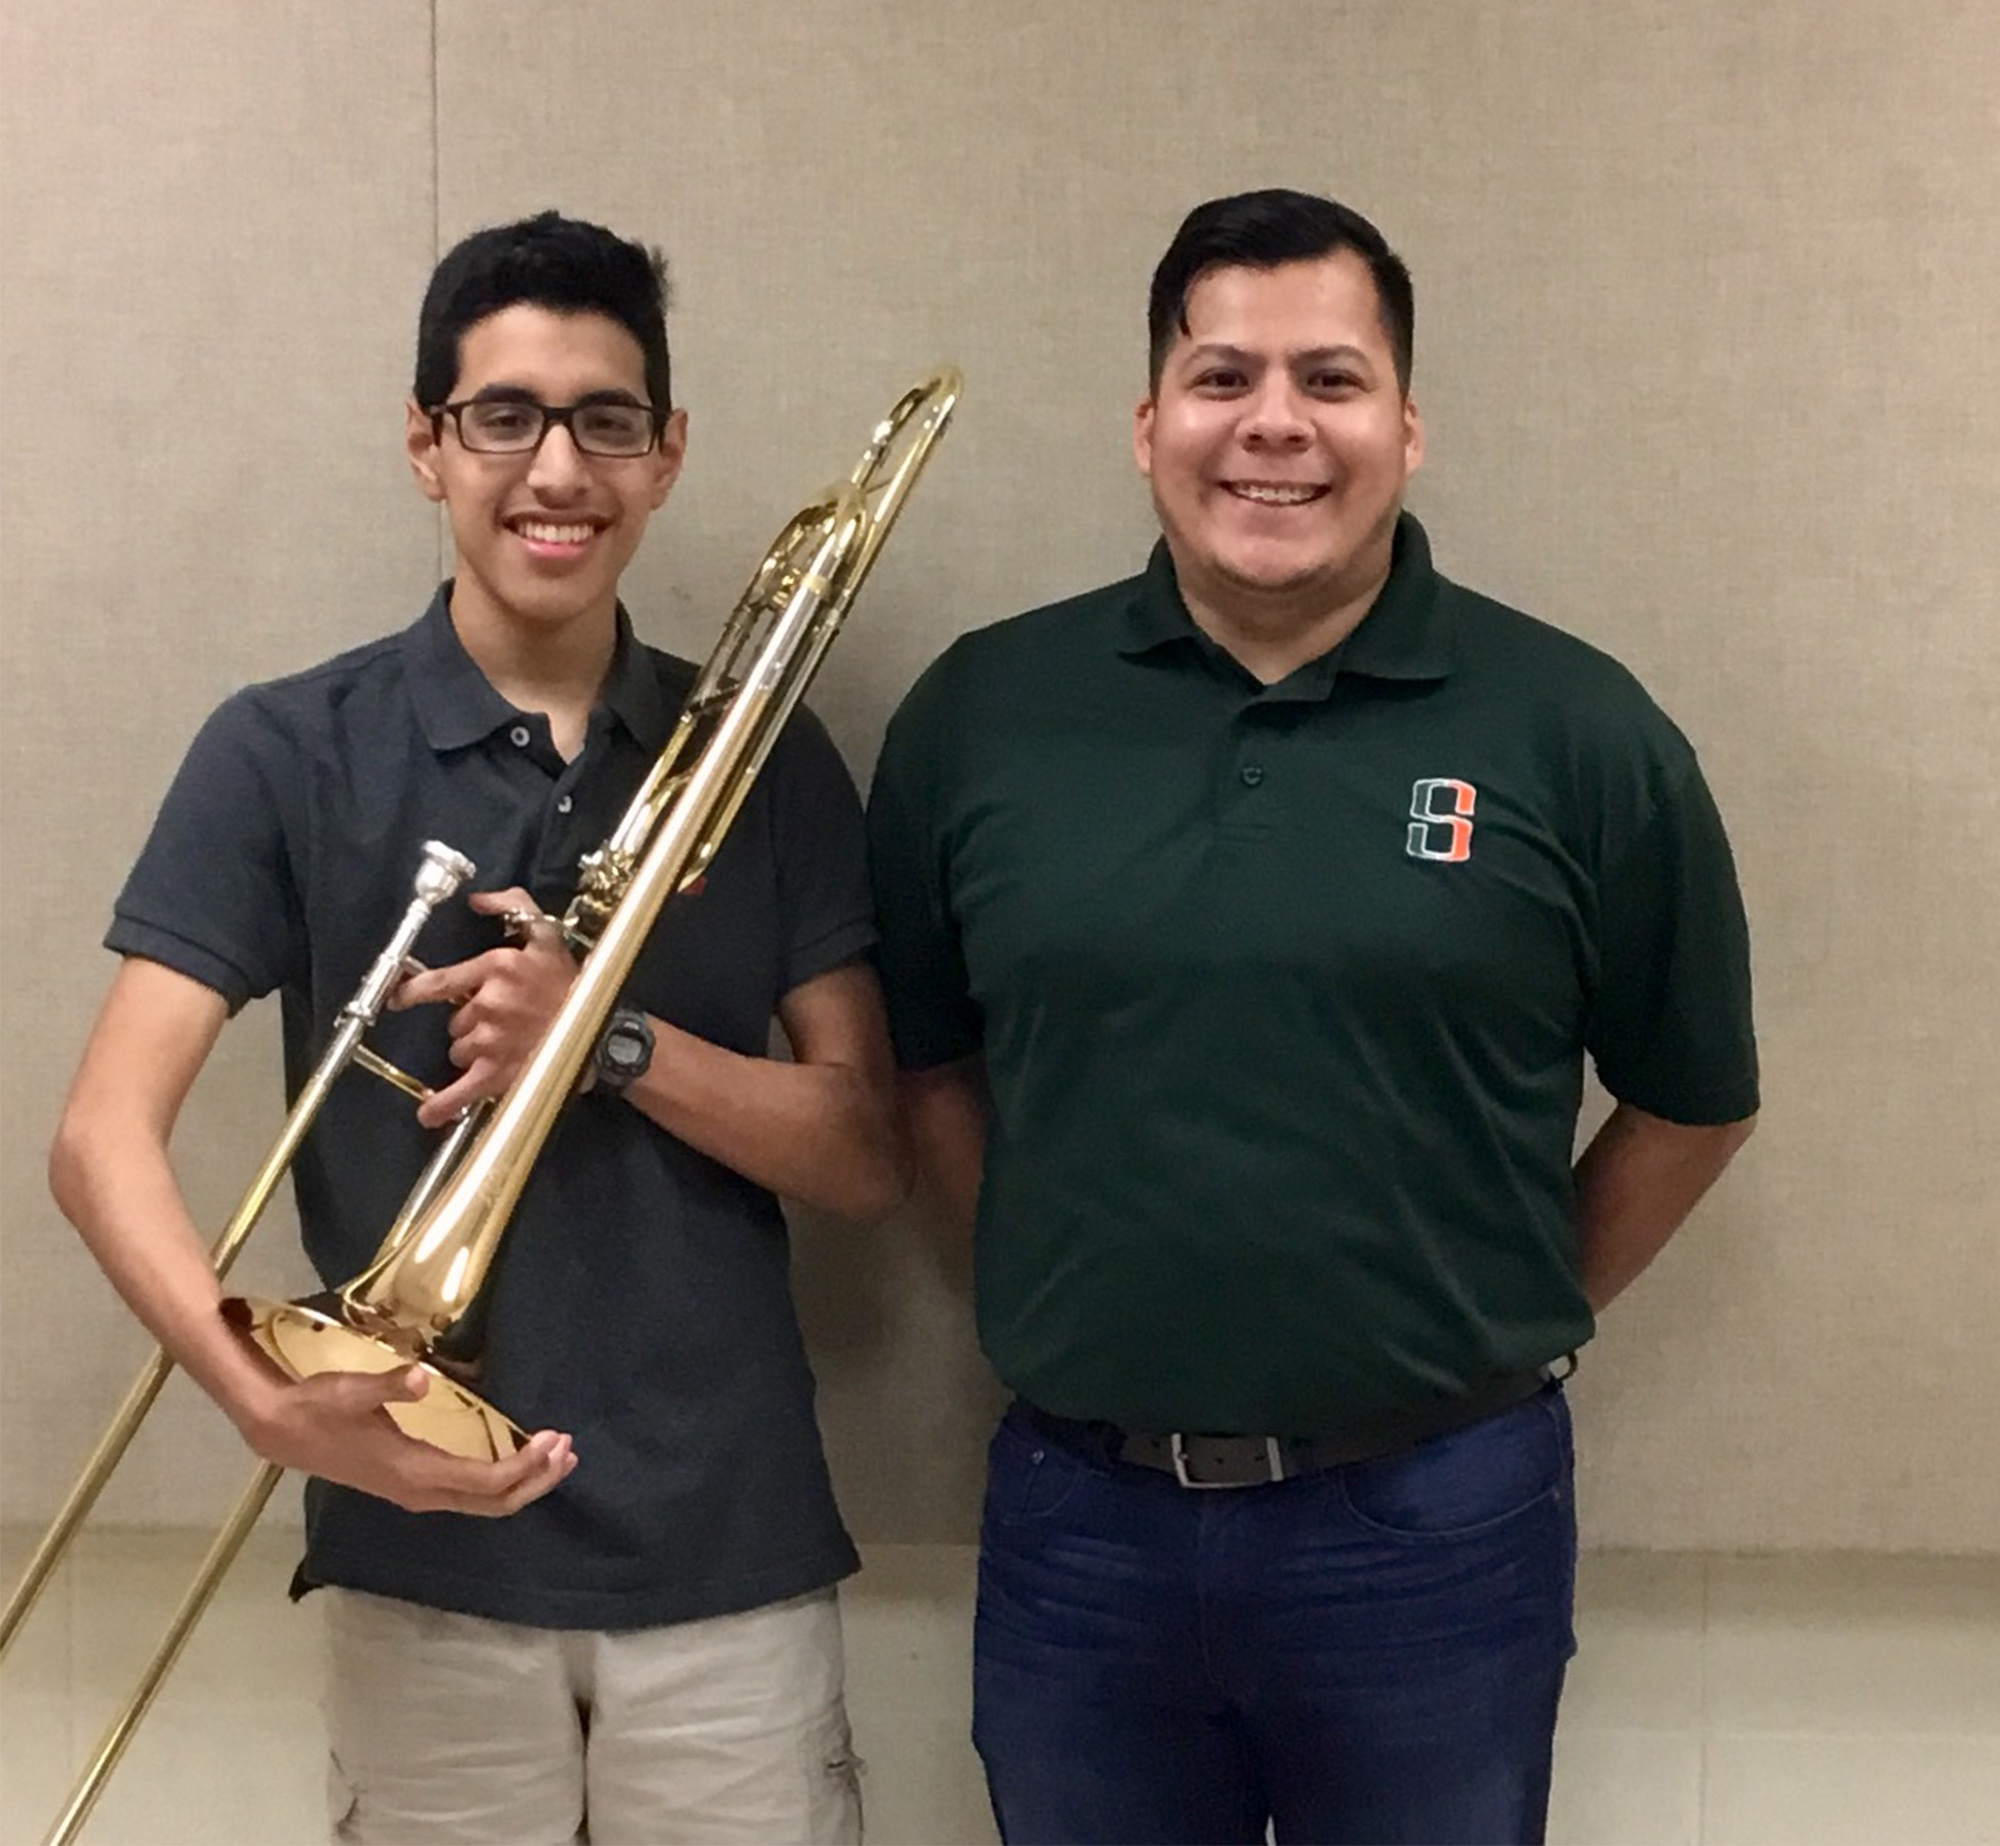 Harlingen South trombonist makes the 2019 TMEA All-State Band